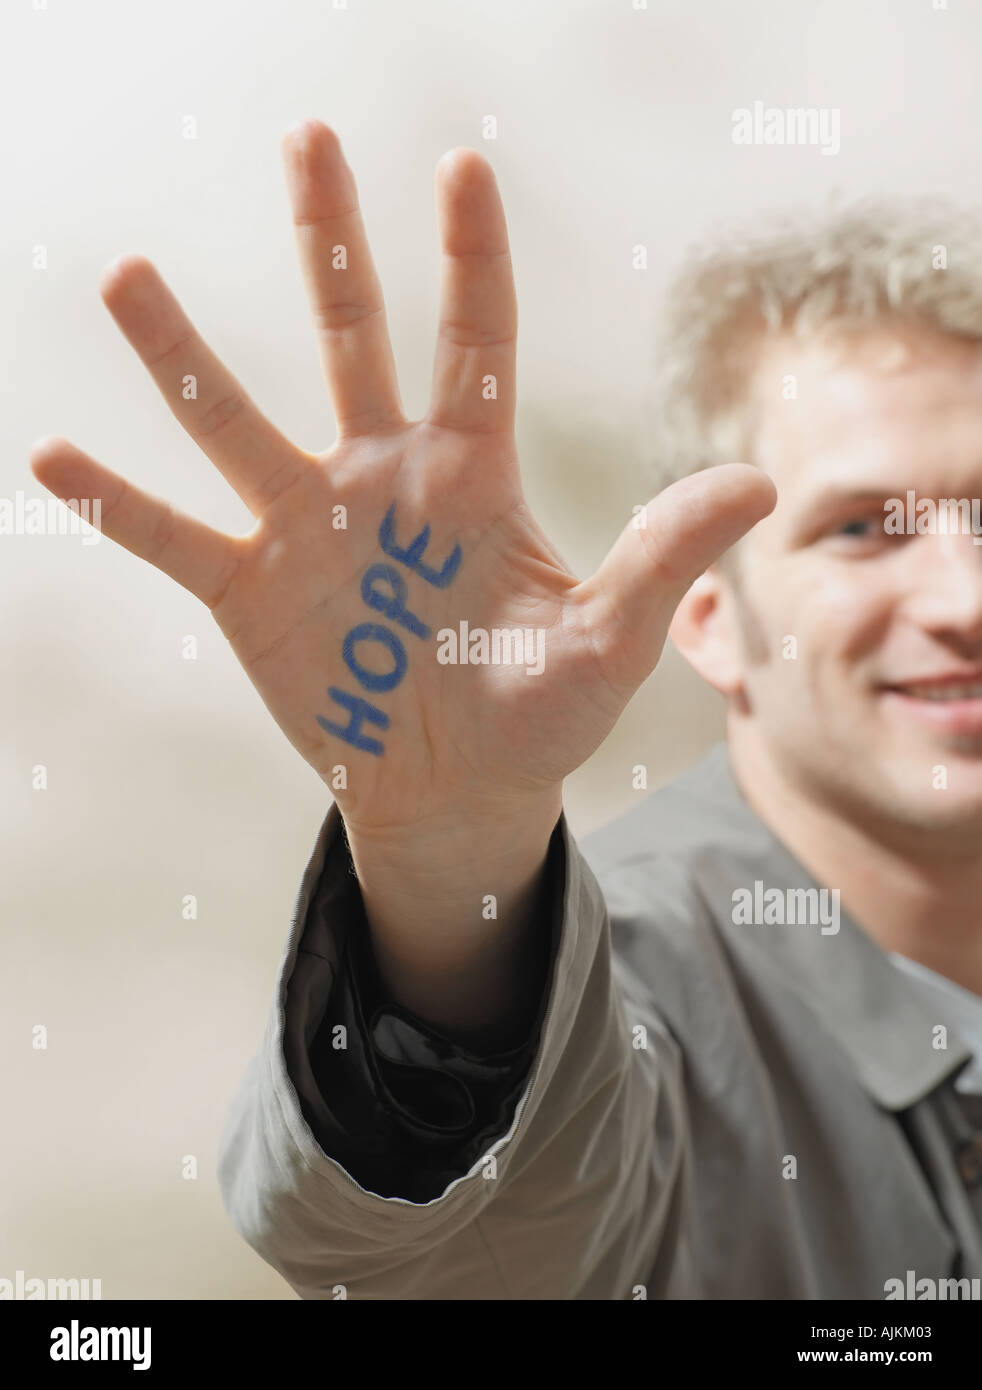 Man with hope written on his hand - Stock Image